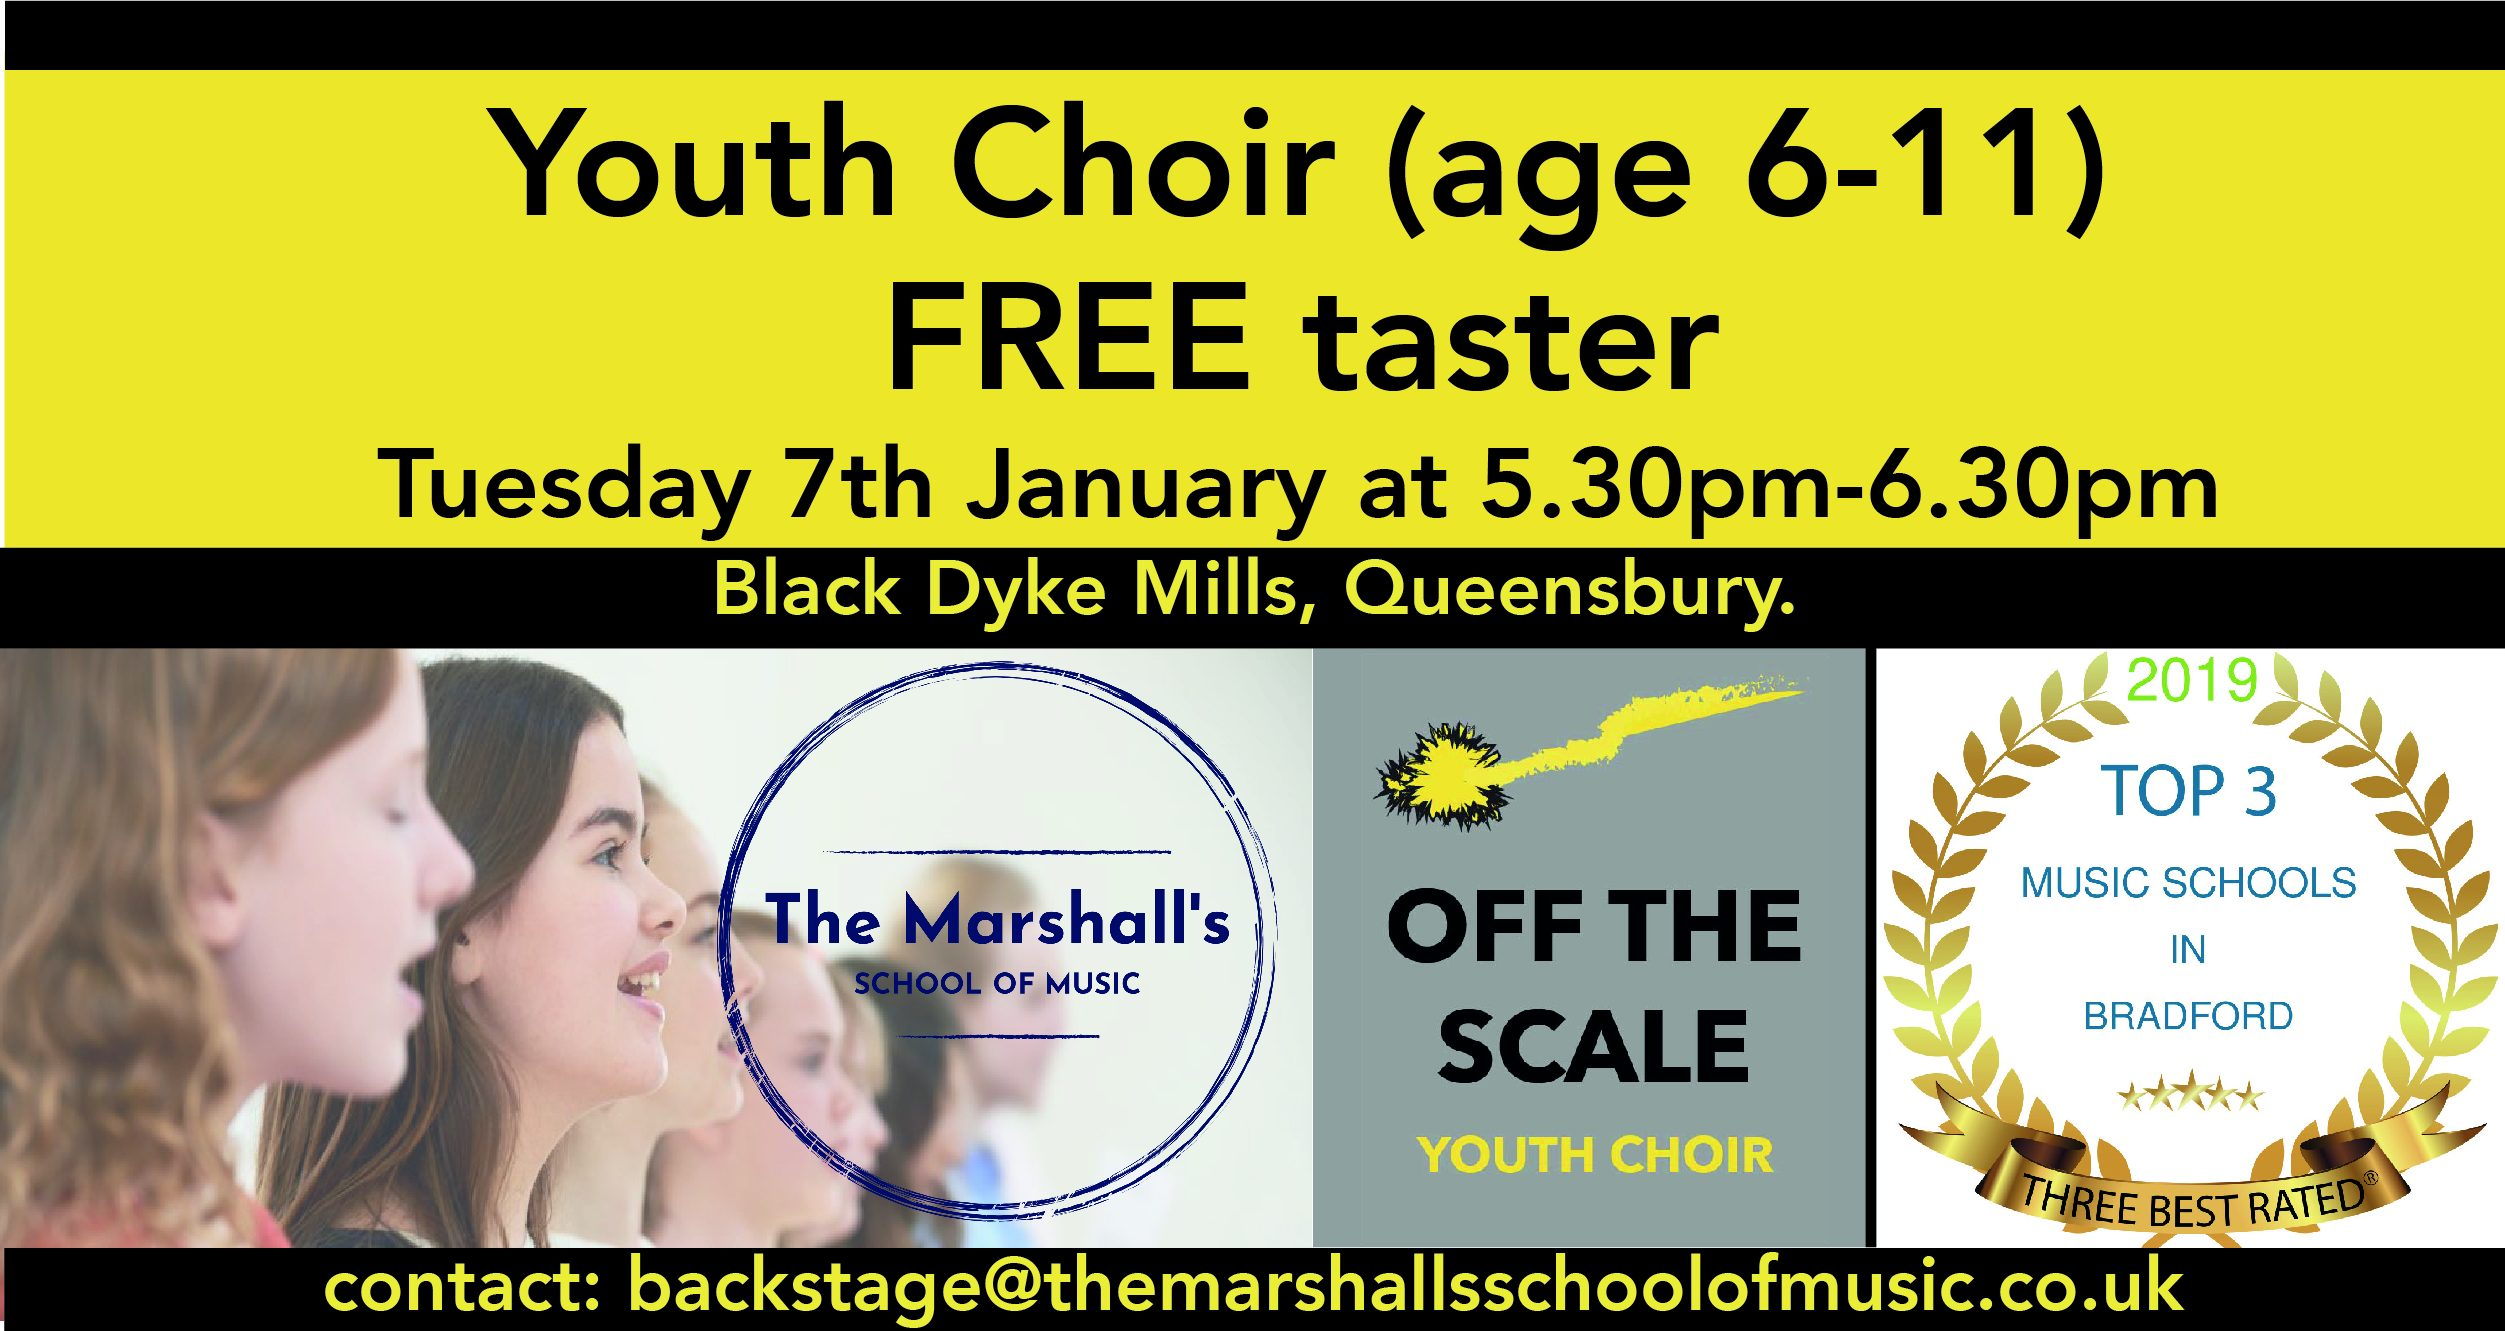 Poster for a Youth Choir in Bradford